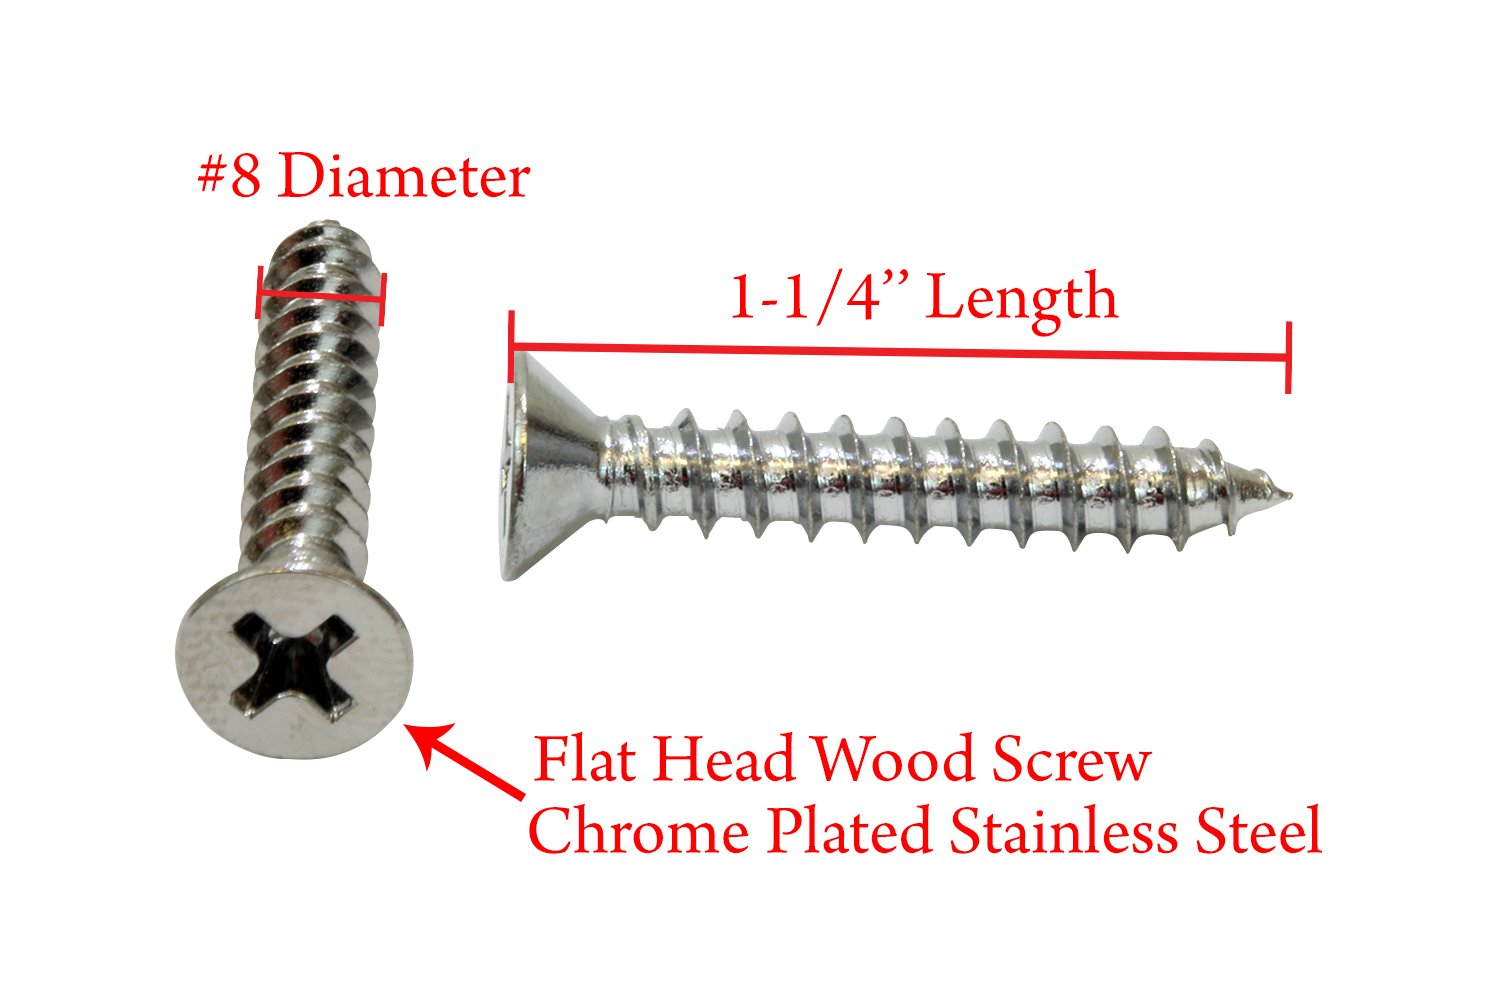 18-8 Stainless Steel Screw by Bolt Dropper 304 100 pc #6 X 3//4 Chrome Coated Stainless Flat Head Phillips Wood Screw,